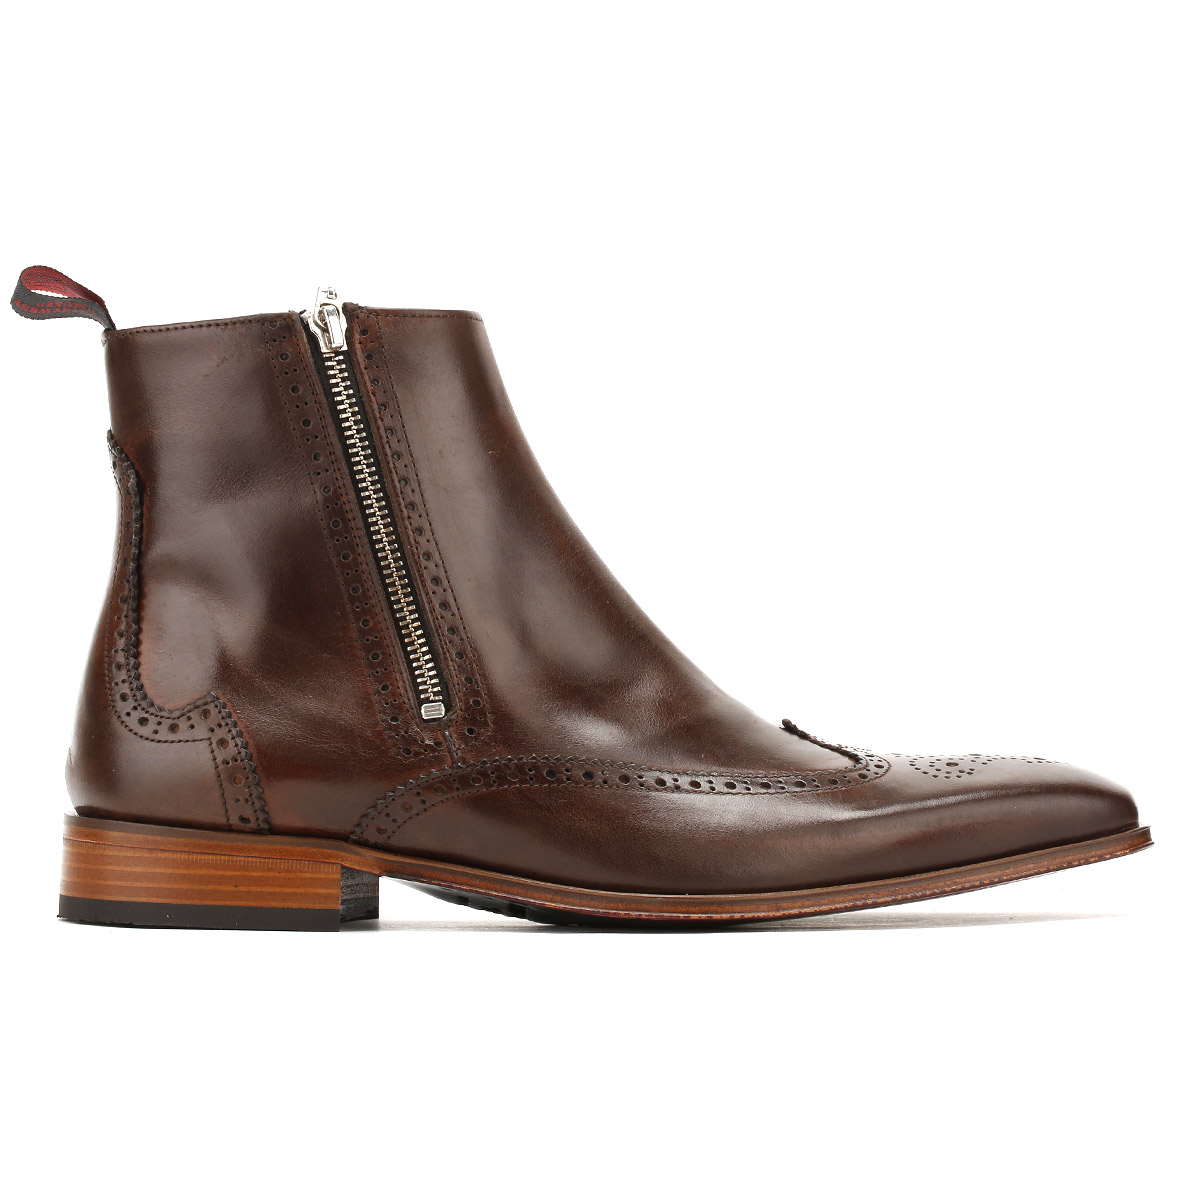 jeffery west mens brown chelsea boots zip up brogue